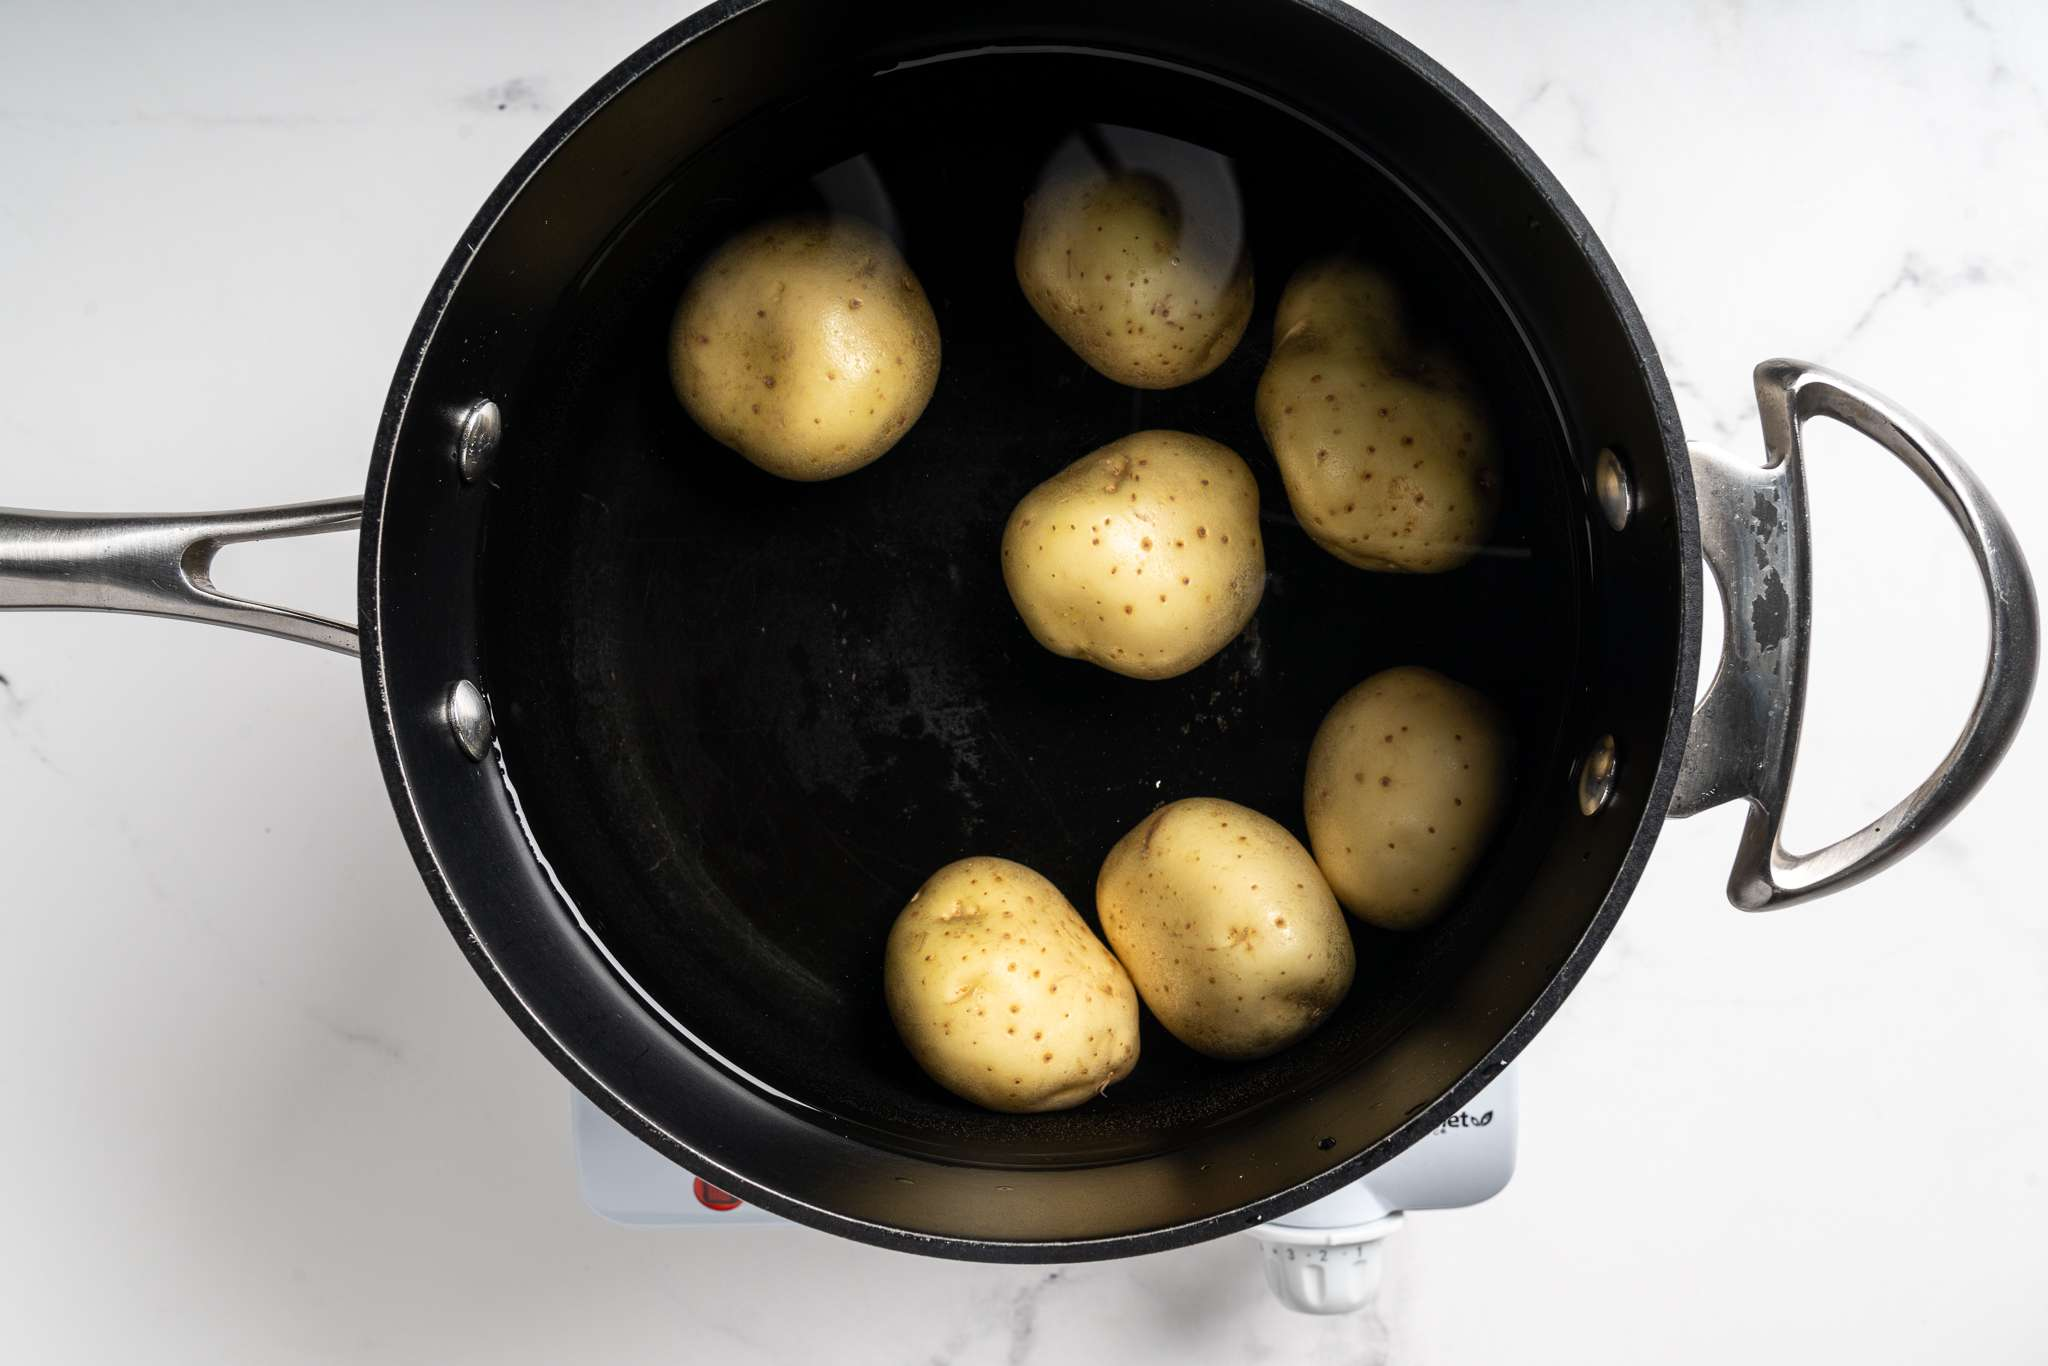 potatoes in a pot with water